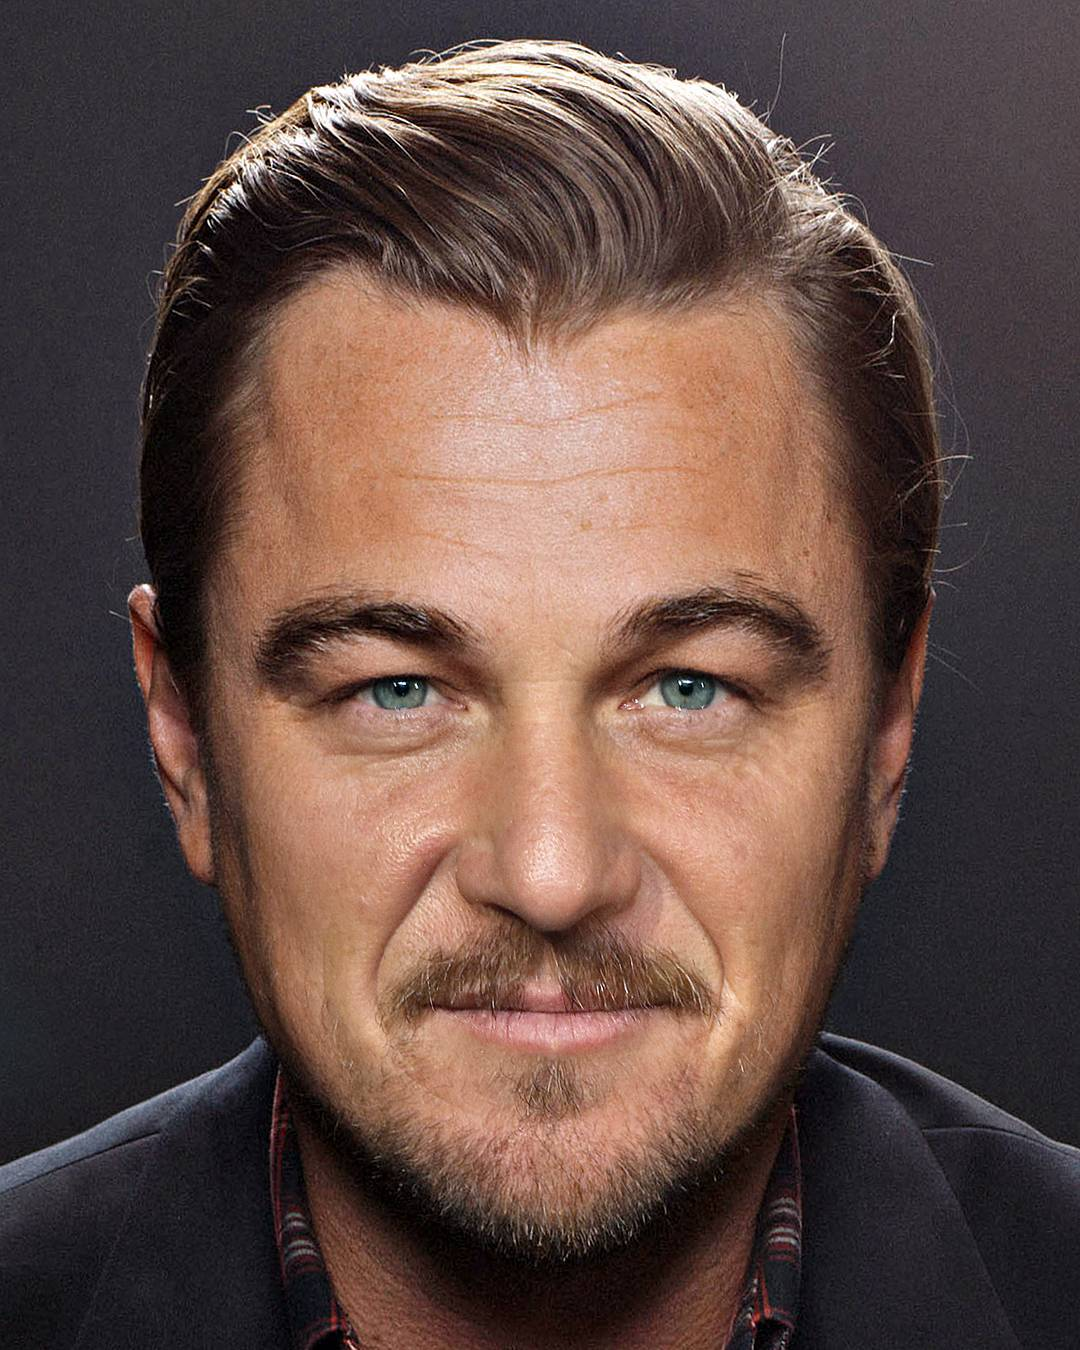 Sean-Penn-mixed-with-Leonardo-DiCaprio